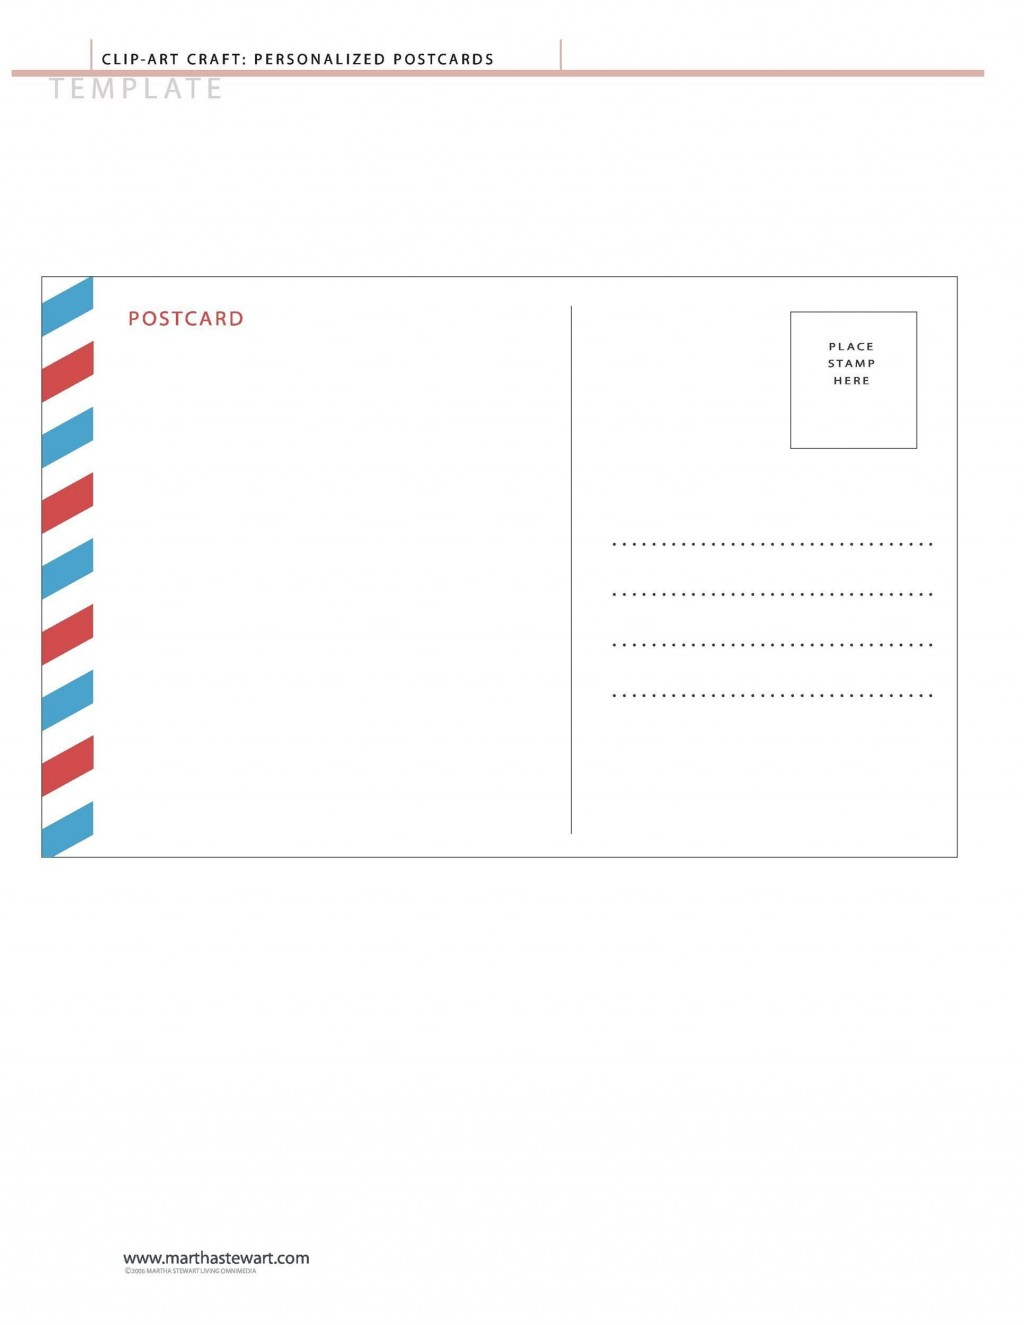 004 Top Postcard Layout For Microsoft Word Highest Quality  4 TemplateLarge